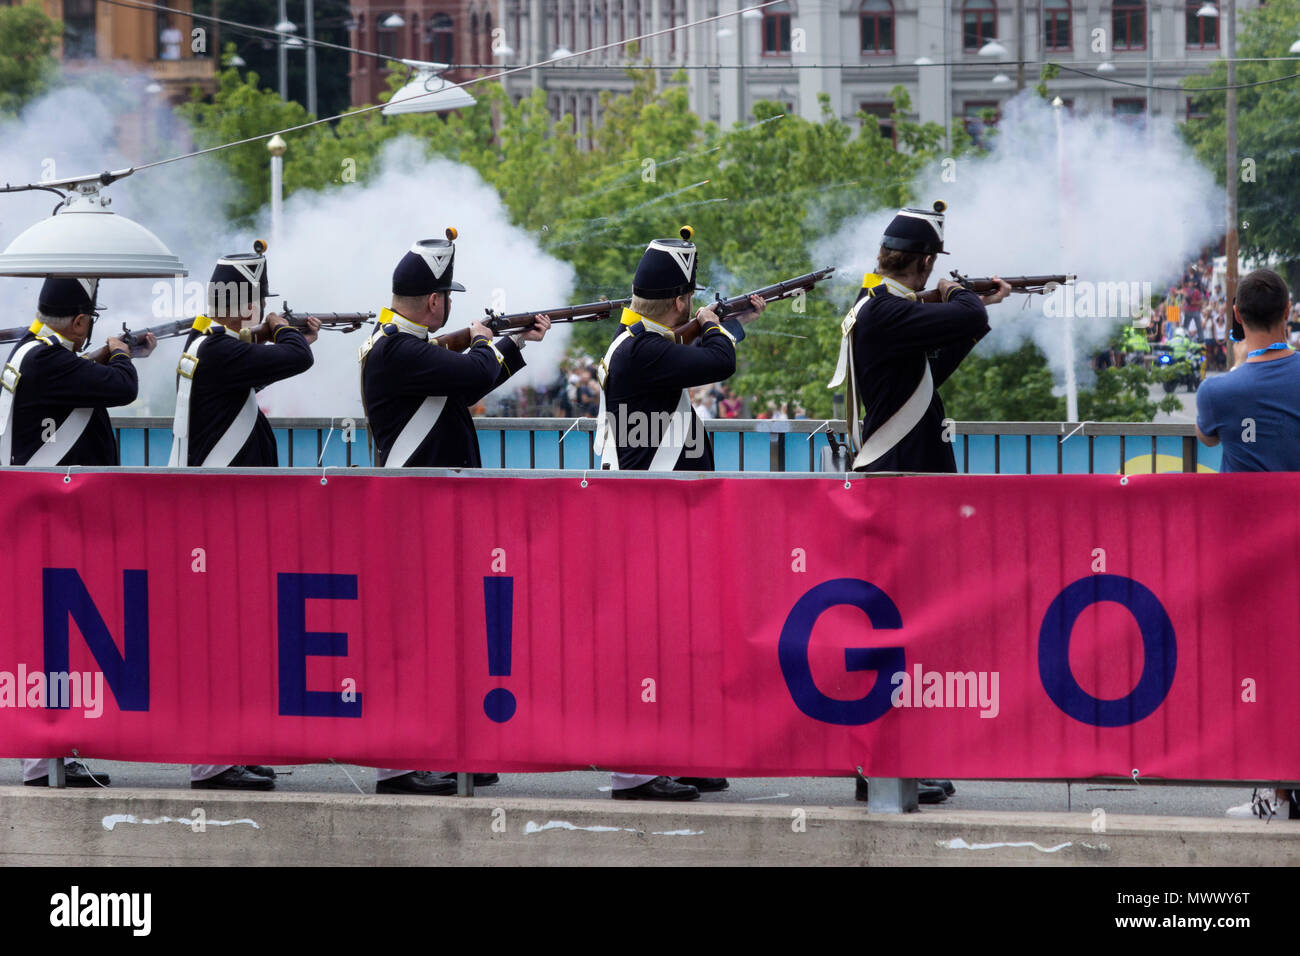 ASICS Stockholm (STHLM) Marathon 2018. The musketeers of the Royal Lifeguards Infantry of Sweden, spout smoke by firing blank gunshots, as an old-fashioned alternative to start timing the race. On your marks, get set, Go ! Stockholm, Sweden. 2nd June 2018. Credit: BasilT/Alamy Live News - Stock Image